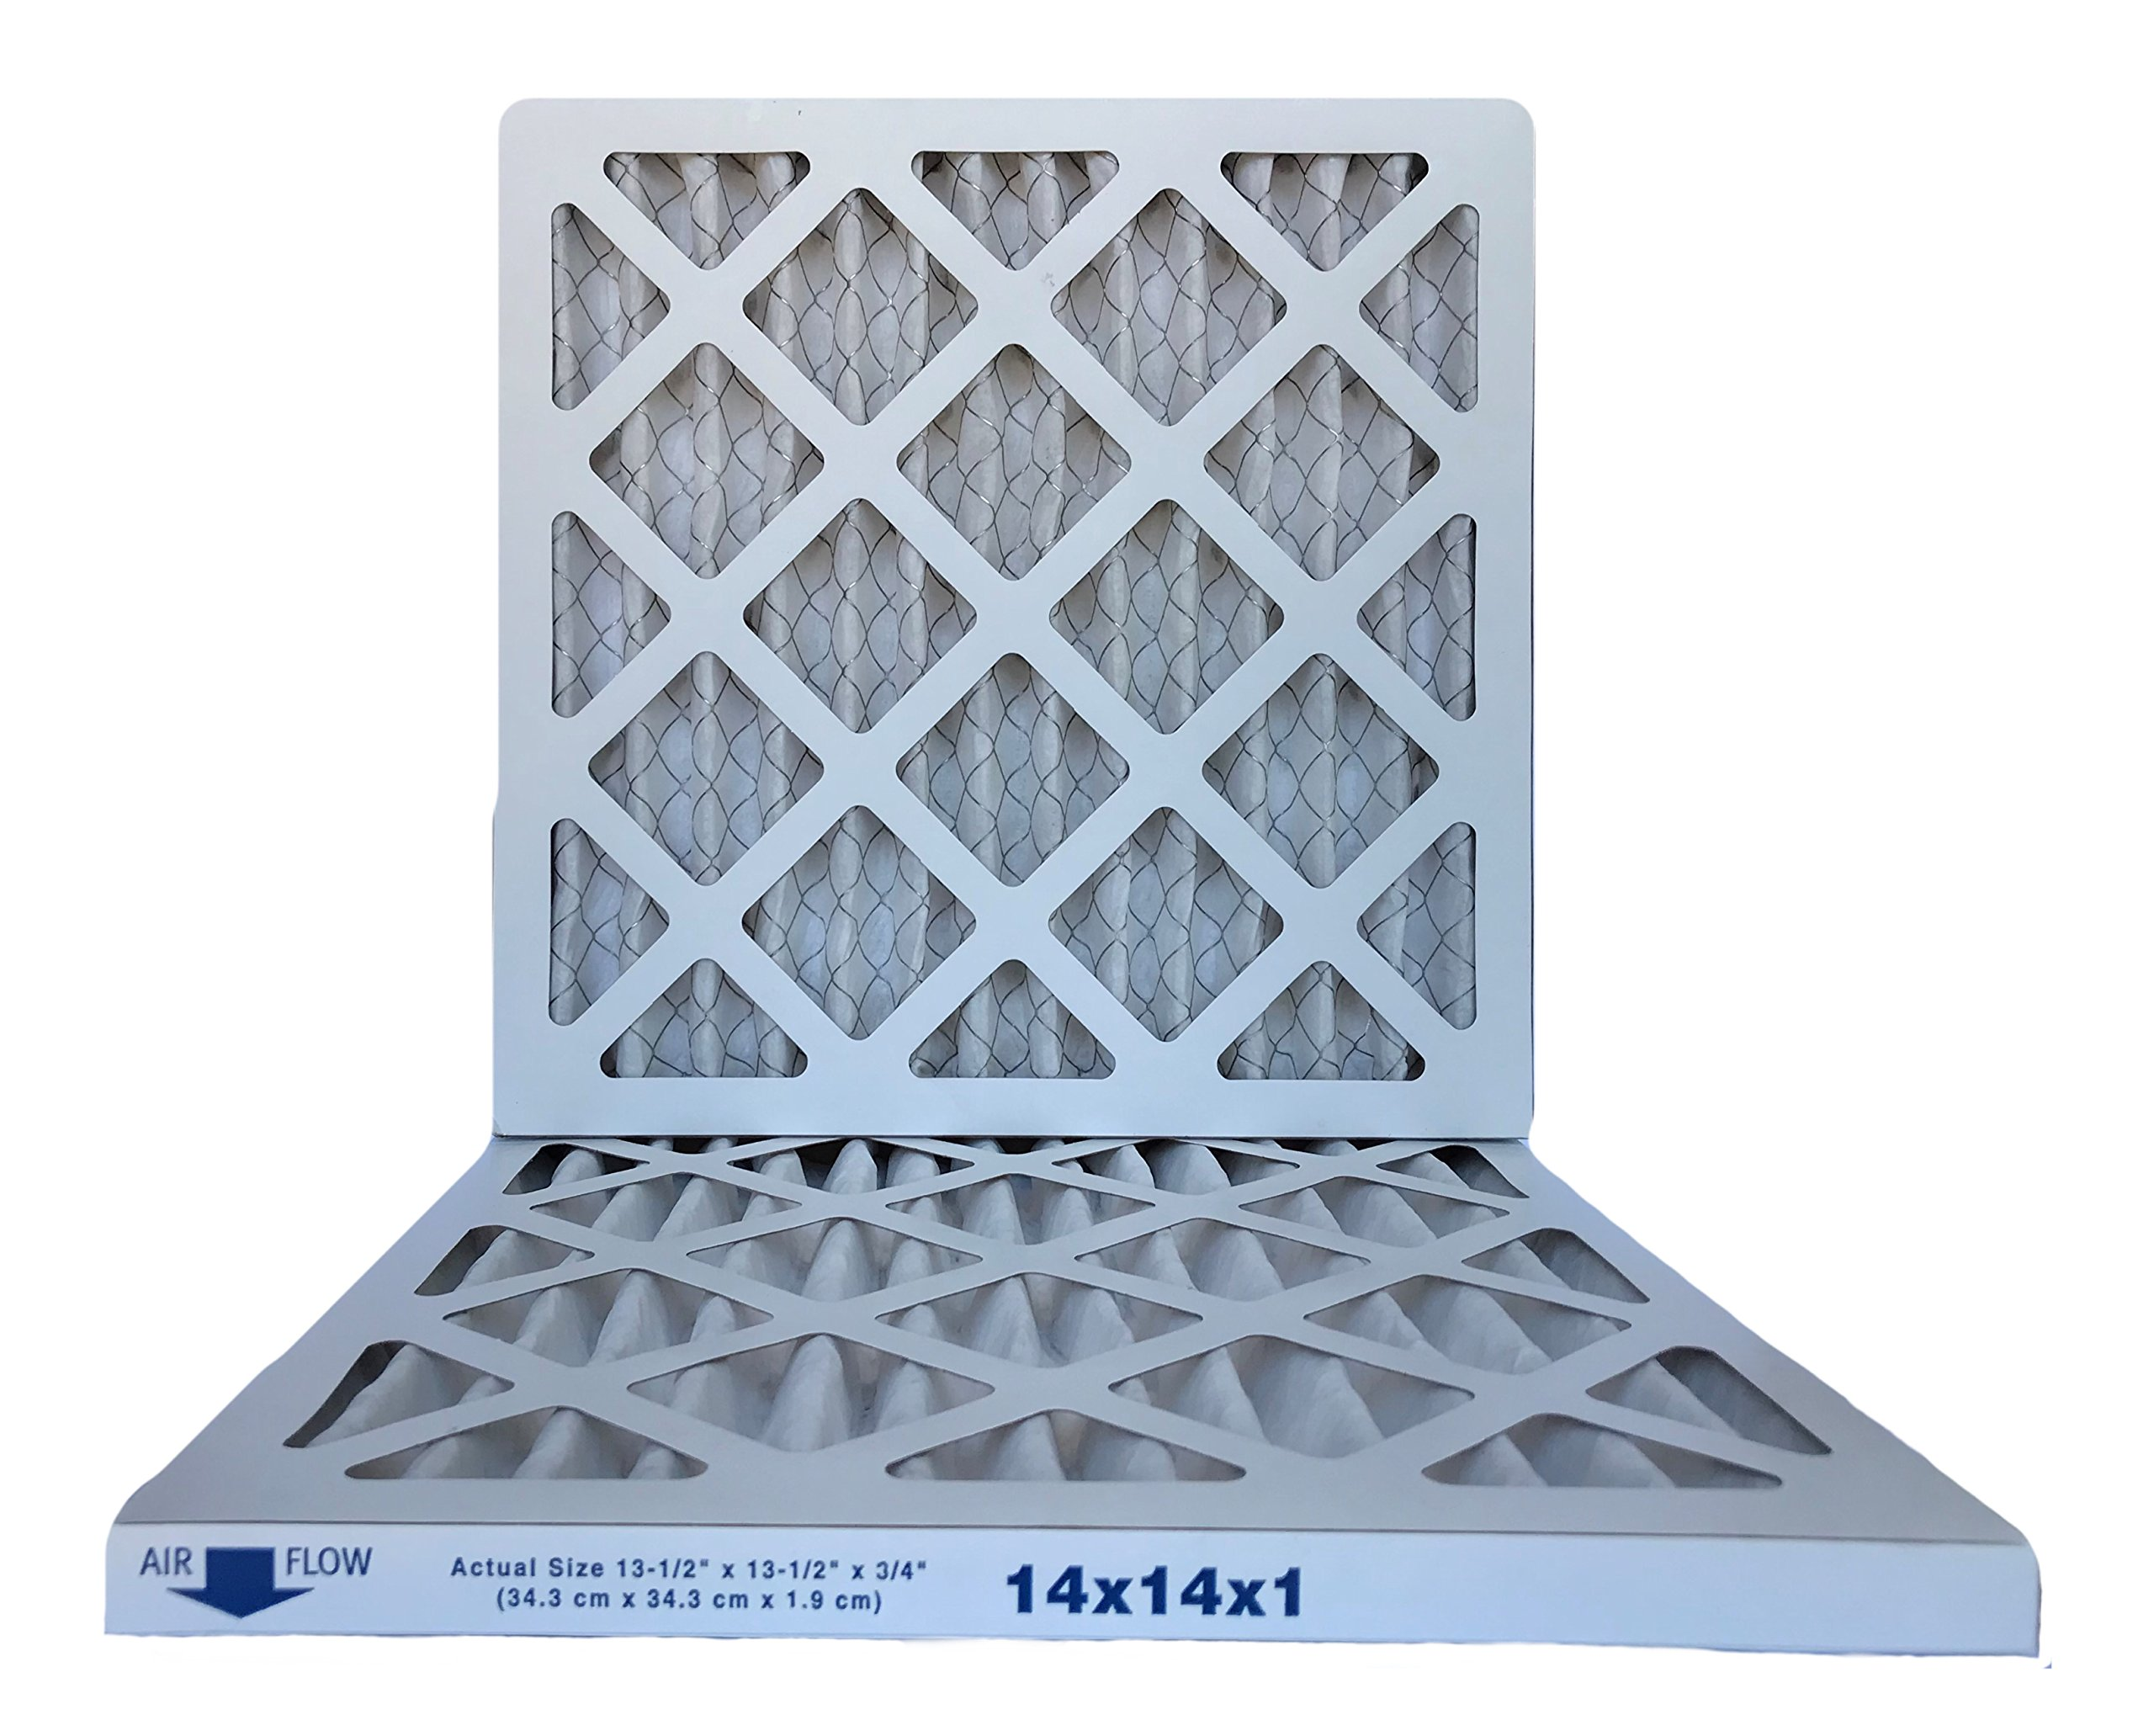 Filterene 14x14x1 Air Filter, MERV 8, MPR 600, Pleated AC Furnace Air Filter, (Pack of 2) Filters, USA Manufactured